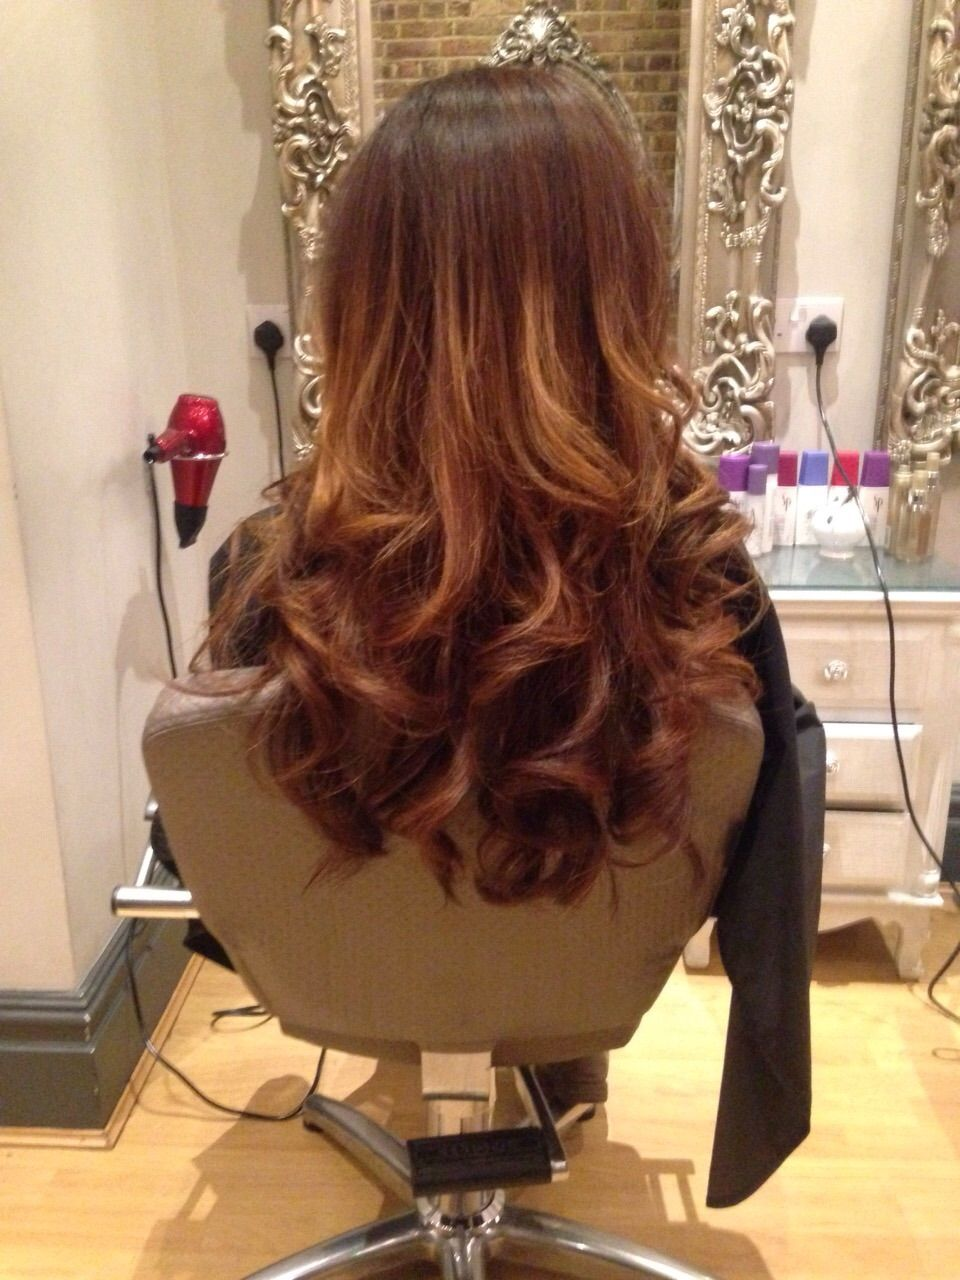 Curly Blowdry Created By One Of Our Trainees Hair Styles Long Hair Styles Curly Blowdry